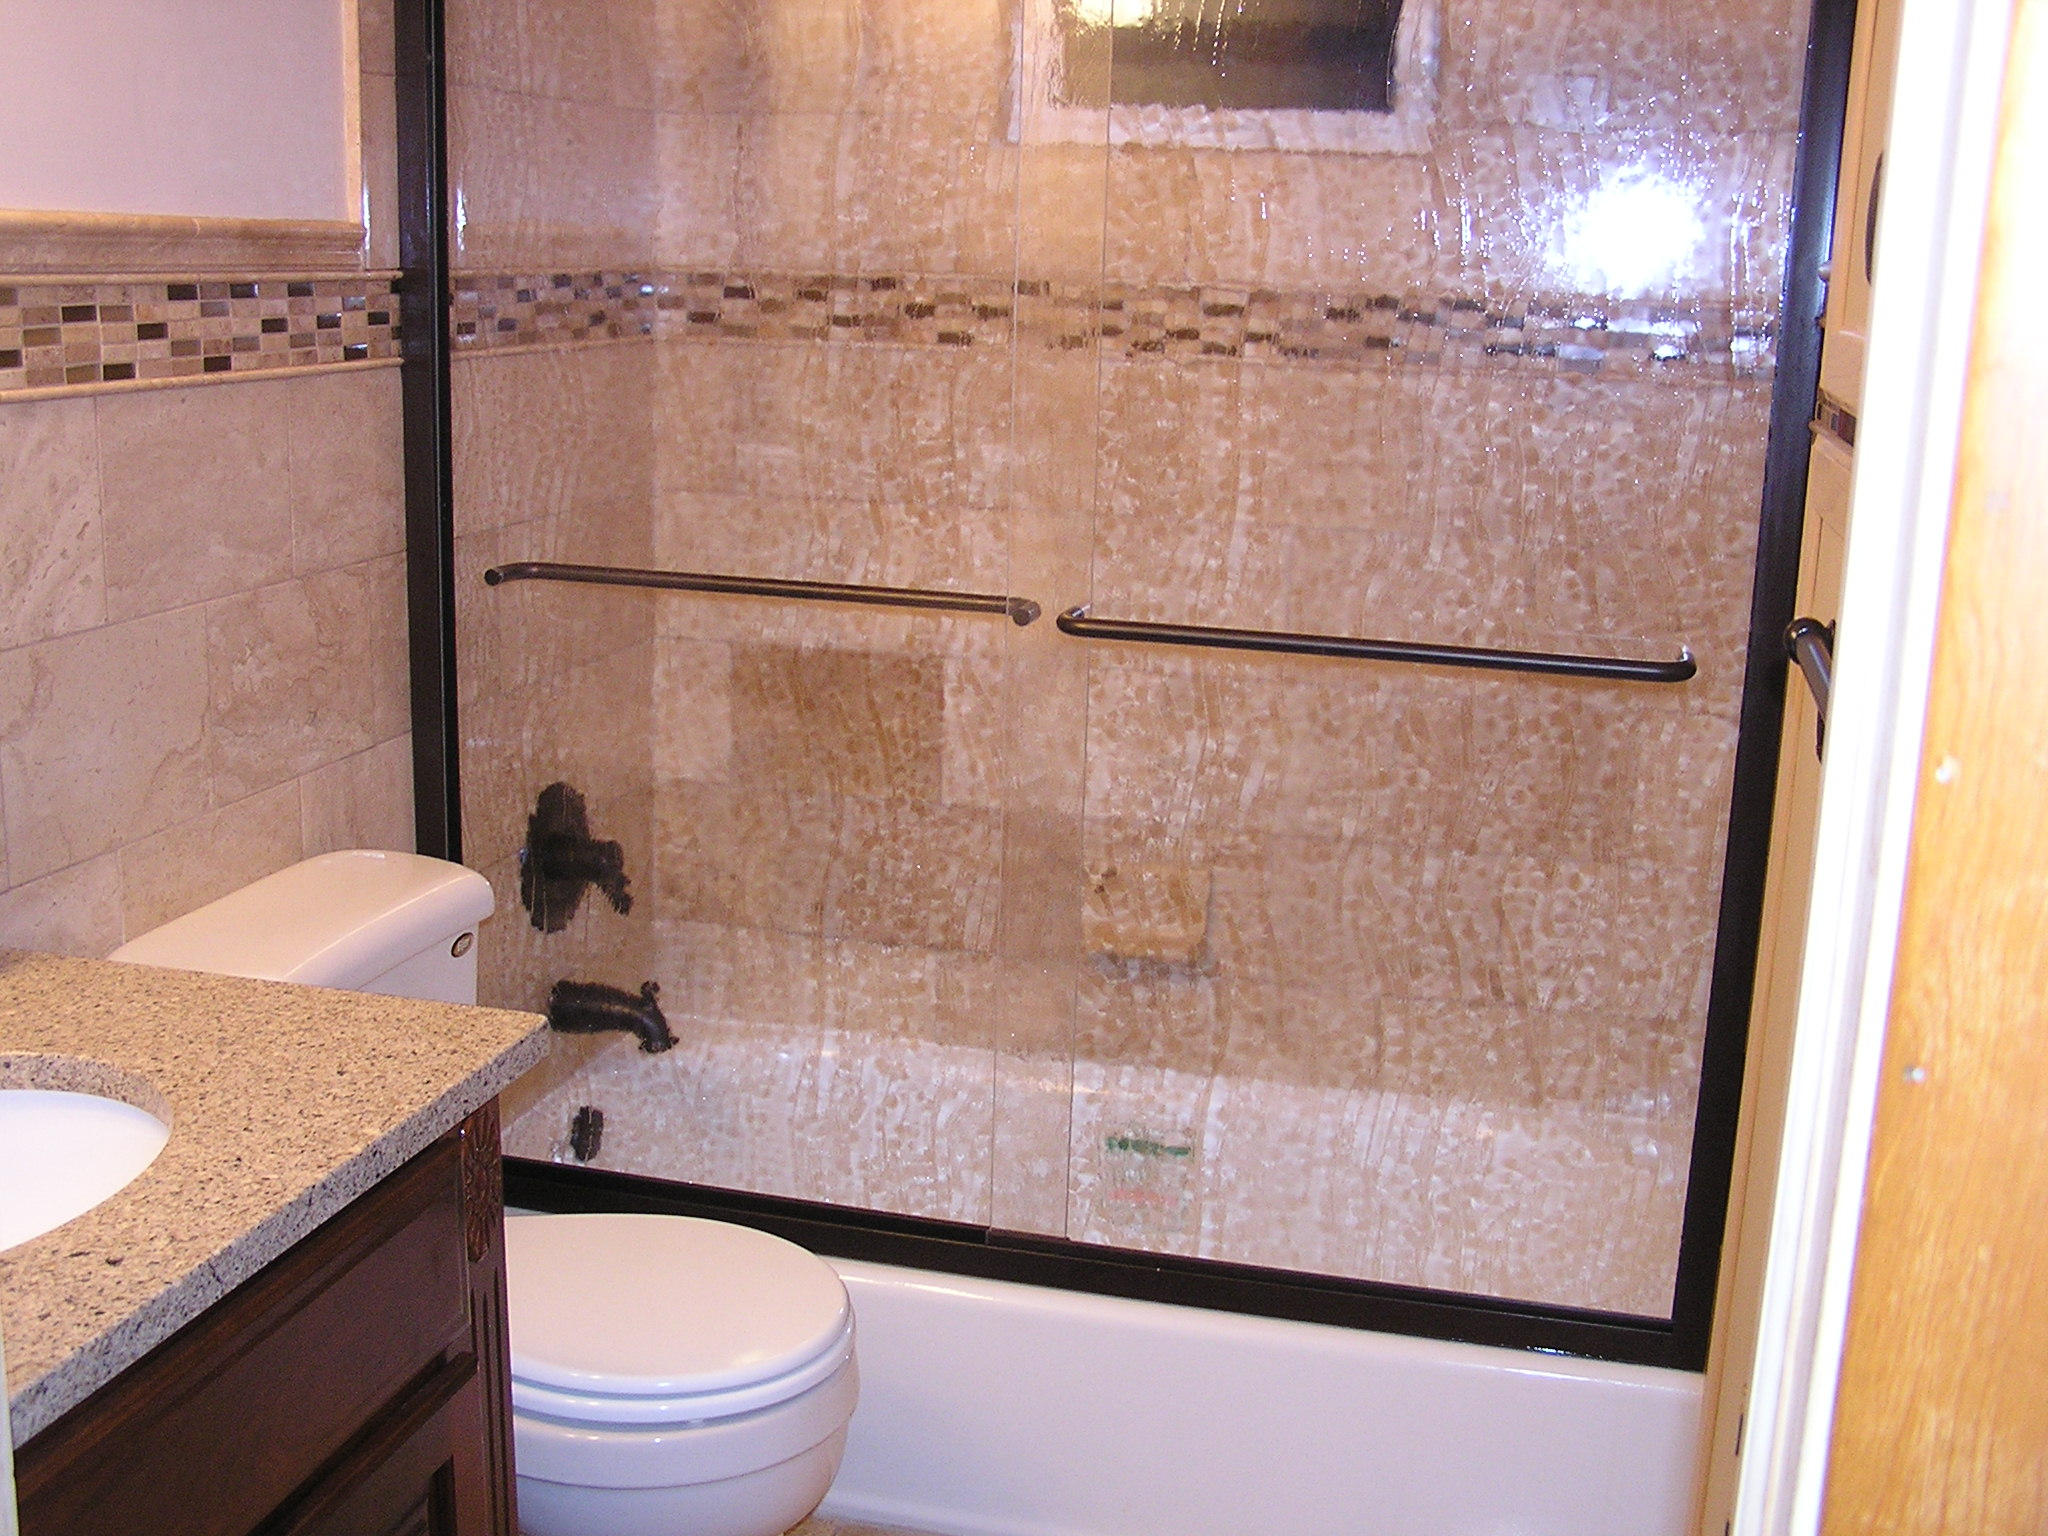 Twin Cities bathroom remodeling